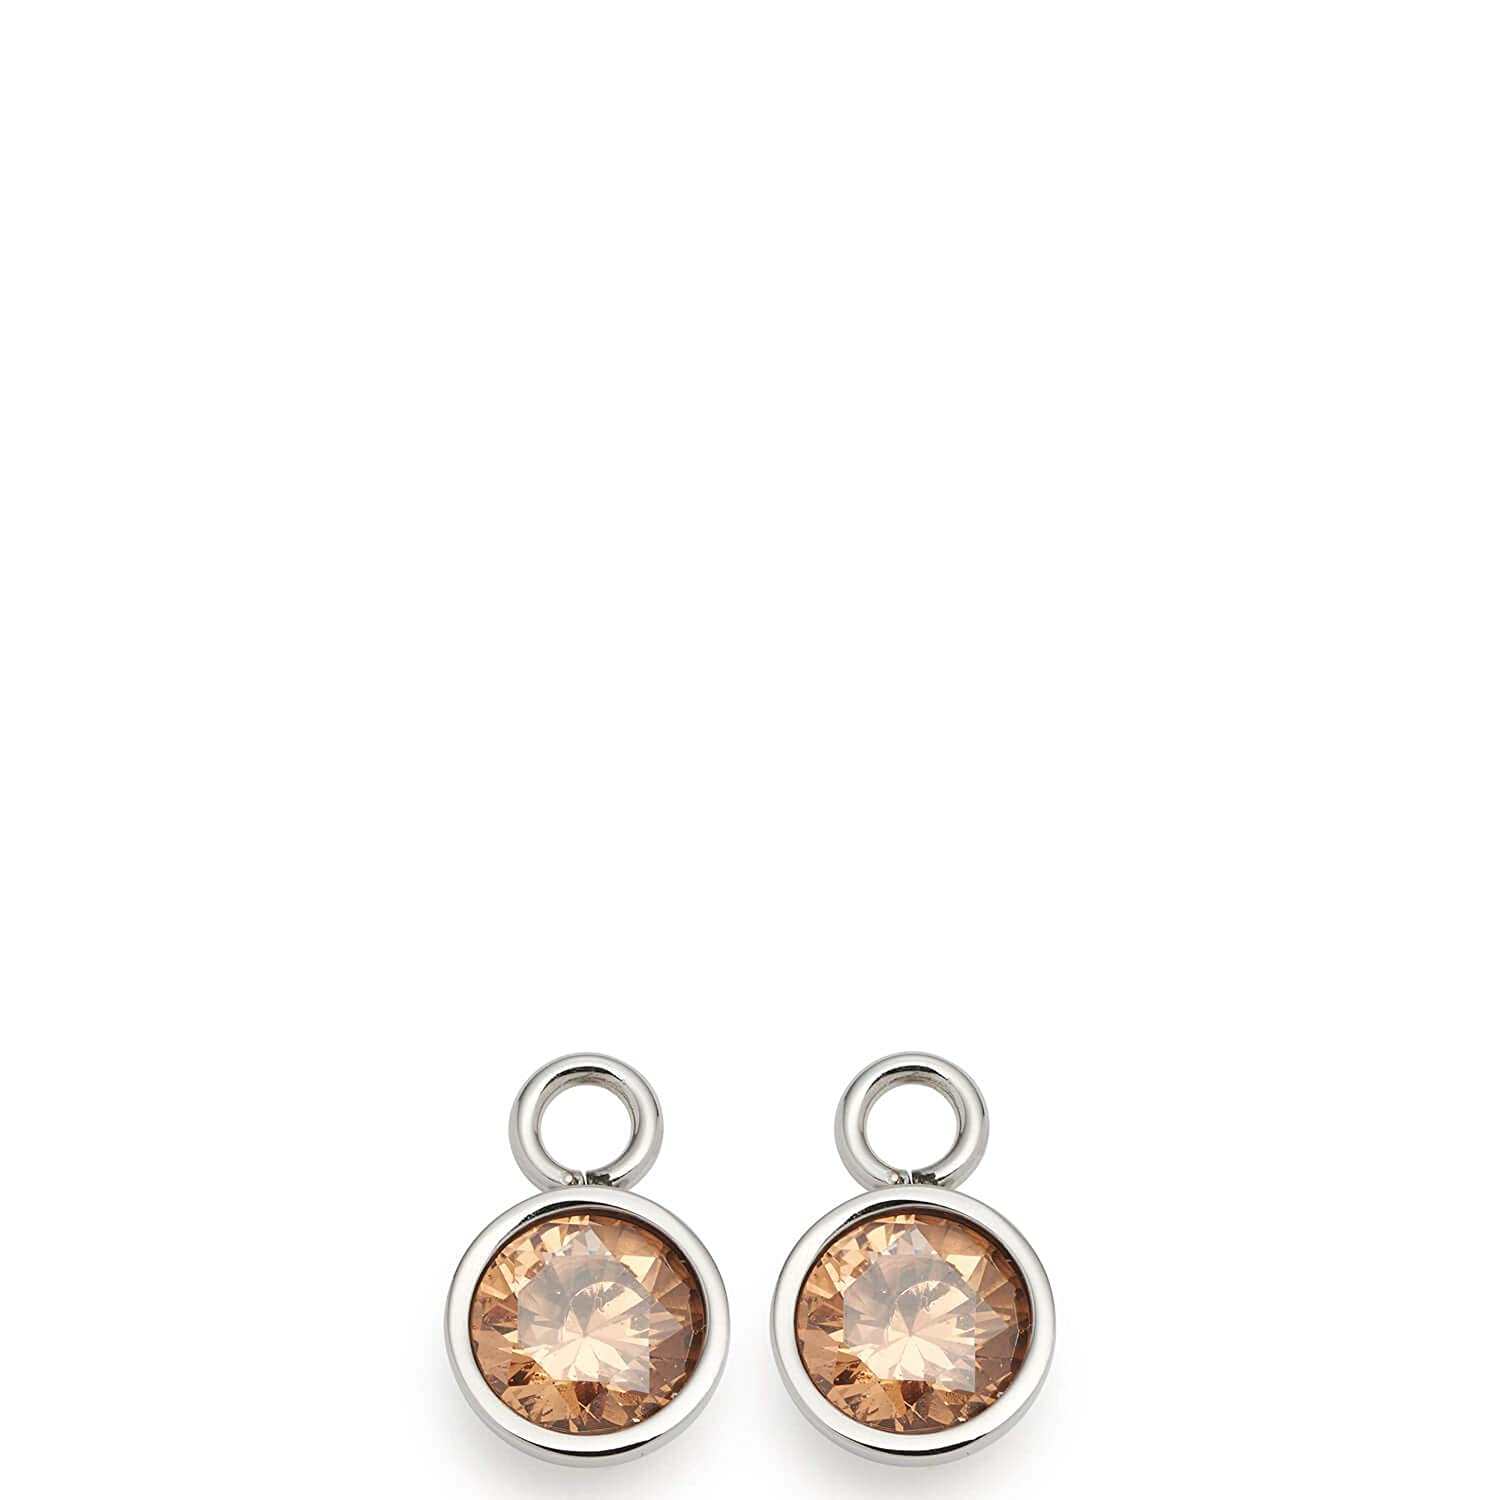 Jewels by Leonardo Anillo statement Mujer acero inoxidable ...